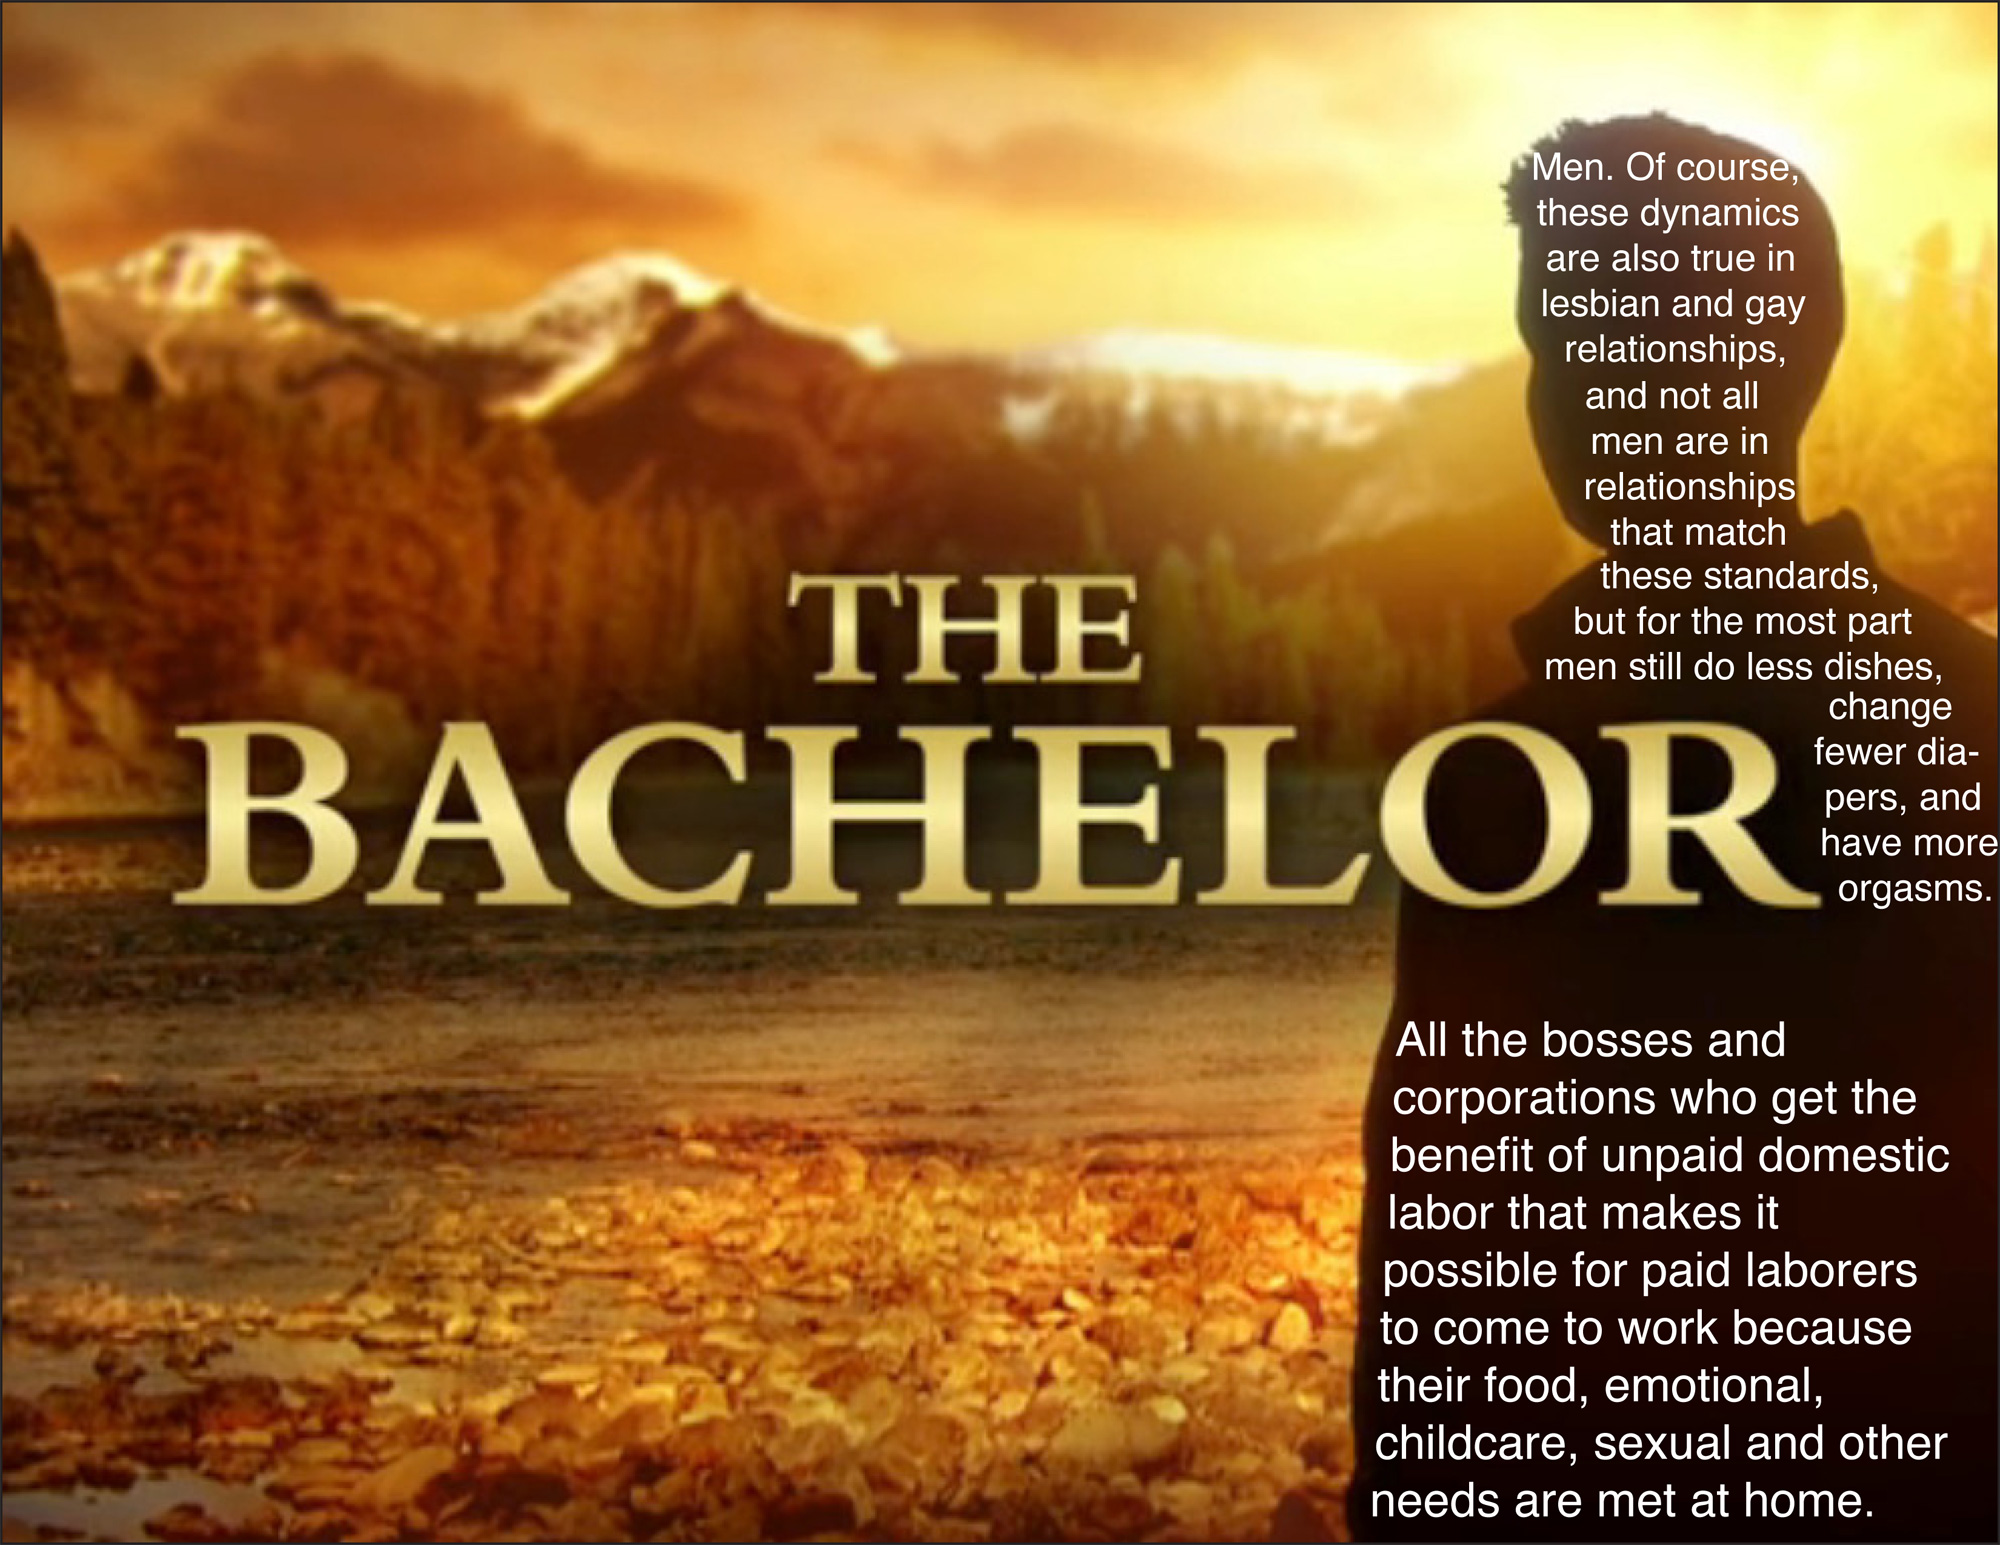 Image of ad for The Bachelor with text reading 'Men, of course, these dynamics are also true in lesbian and gay relationships, and not all men are in relationships that match these standards, but for the most part, men still do less dishes, change fewer diapers, and have more orgasms, All the bosses and corporations who get the benefit of unpaid domestic labor that makes it possible for paid laborers to come to work because their food, emotional, childcare, sexual, and other needs are met at home'